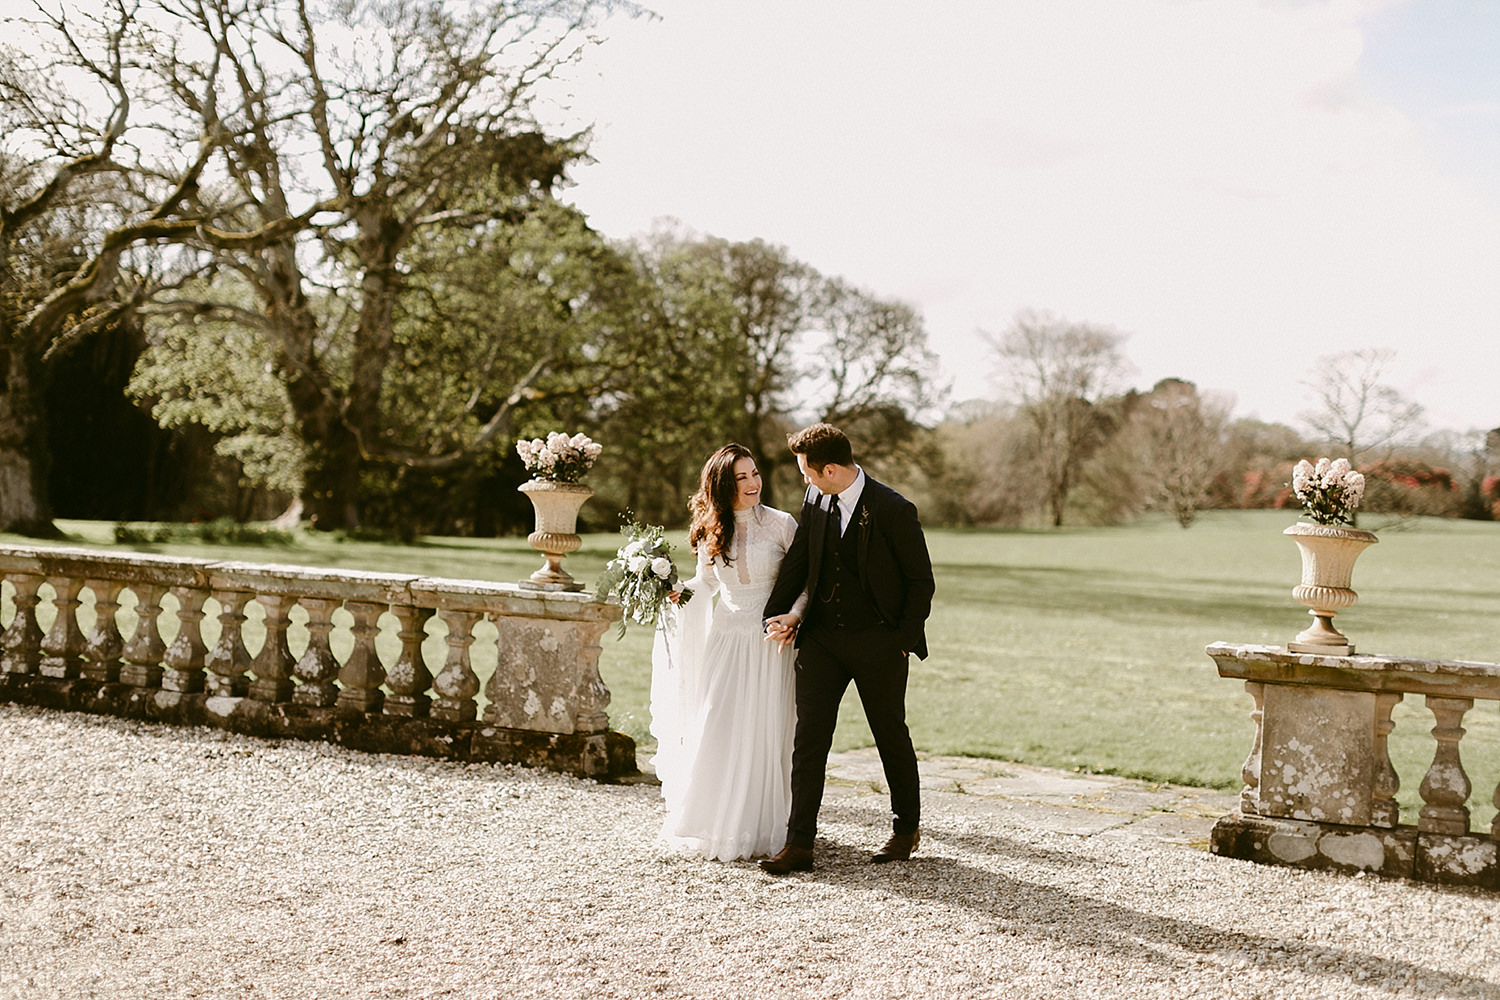 Northern Ireland Wedding Photographers Adam & Grace 5194